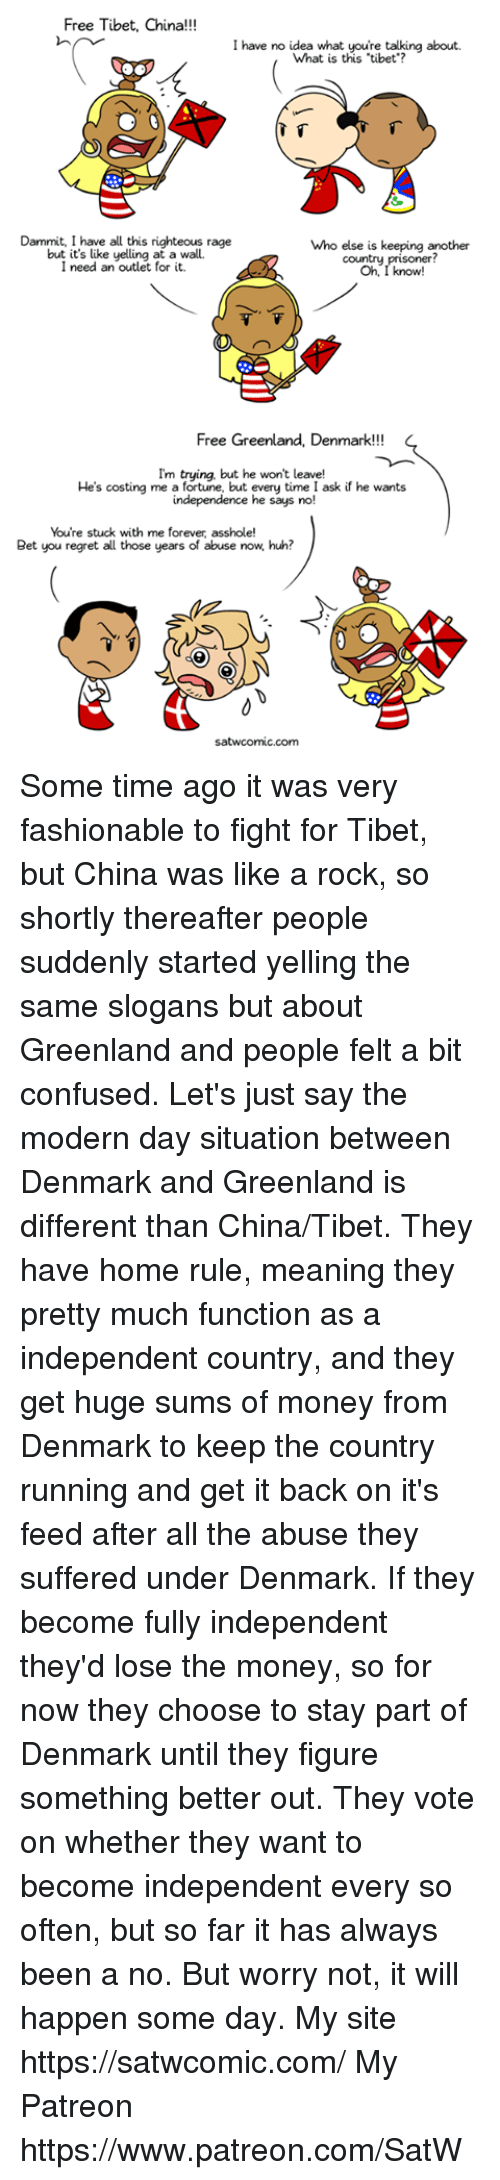 "Confused, Dank, and Huh: Free Tibet, China!!!  I have no idea what youre talking about.  What is this ""tibet?  Dammit, I have all this righteous rage  but it's like yelling at a wall.  I need an outlet for it.  who else is keeping another  Oh, I know!  country  Free Greenland, Denmark!!!  Im trying, but he won't leave!  He's costing me a fortune, but every time I ask if he wants  independence he says no!  You're stuck with me forever, asshole!  Bet you regret all those years of abuse now, huh?  1t  satwcomic.com Some time ago it was very fashionable to fight for Tibet, but China was like a rock, so shortly thereafter people suddenly started yelling the same slogans but about Greenland and people felt a bit confused. Let's just say the modern day situation between Denmark and Greenland is different than China/Tibet. They have home rule, meaning they pretty much function as a independent country, and they get huge sums of money from Denmark to keep the country running and get it back on it's feed after all the abuse they suffered under Denmark. If they become fully independent they'd lose the money, so for now they choose to stay part of Denmark until they figure something better out. They vote on whether they want to become independent every so often, but so far it has always been a no. But worry not, it will happen some day. My site https://satwcomic.com/ My Patreon https://www.patreon.com/SatW"